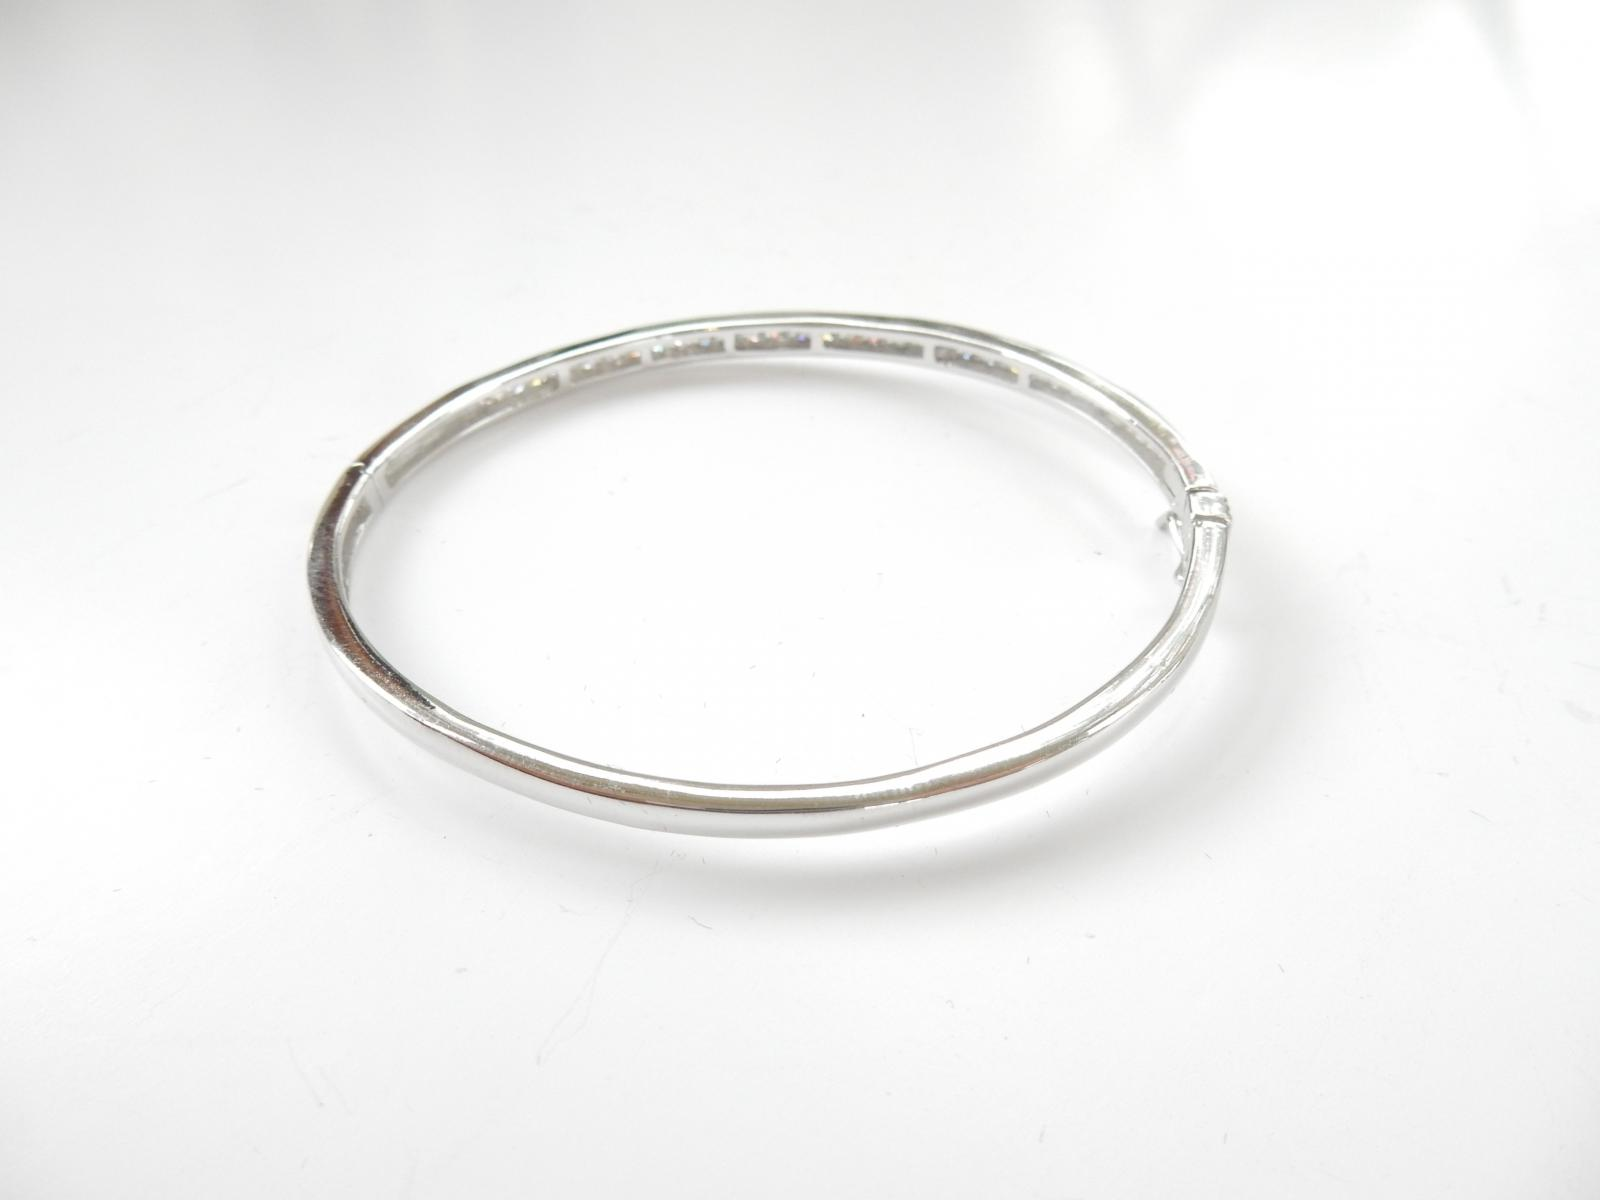 Photo of Delicate Sterling Silver & Cubic Zirconia Bangle